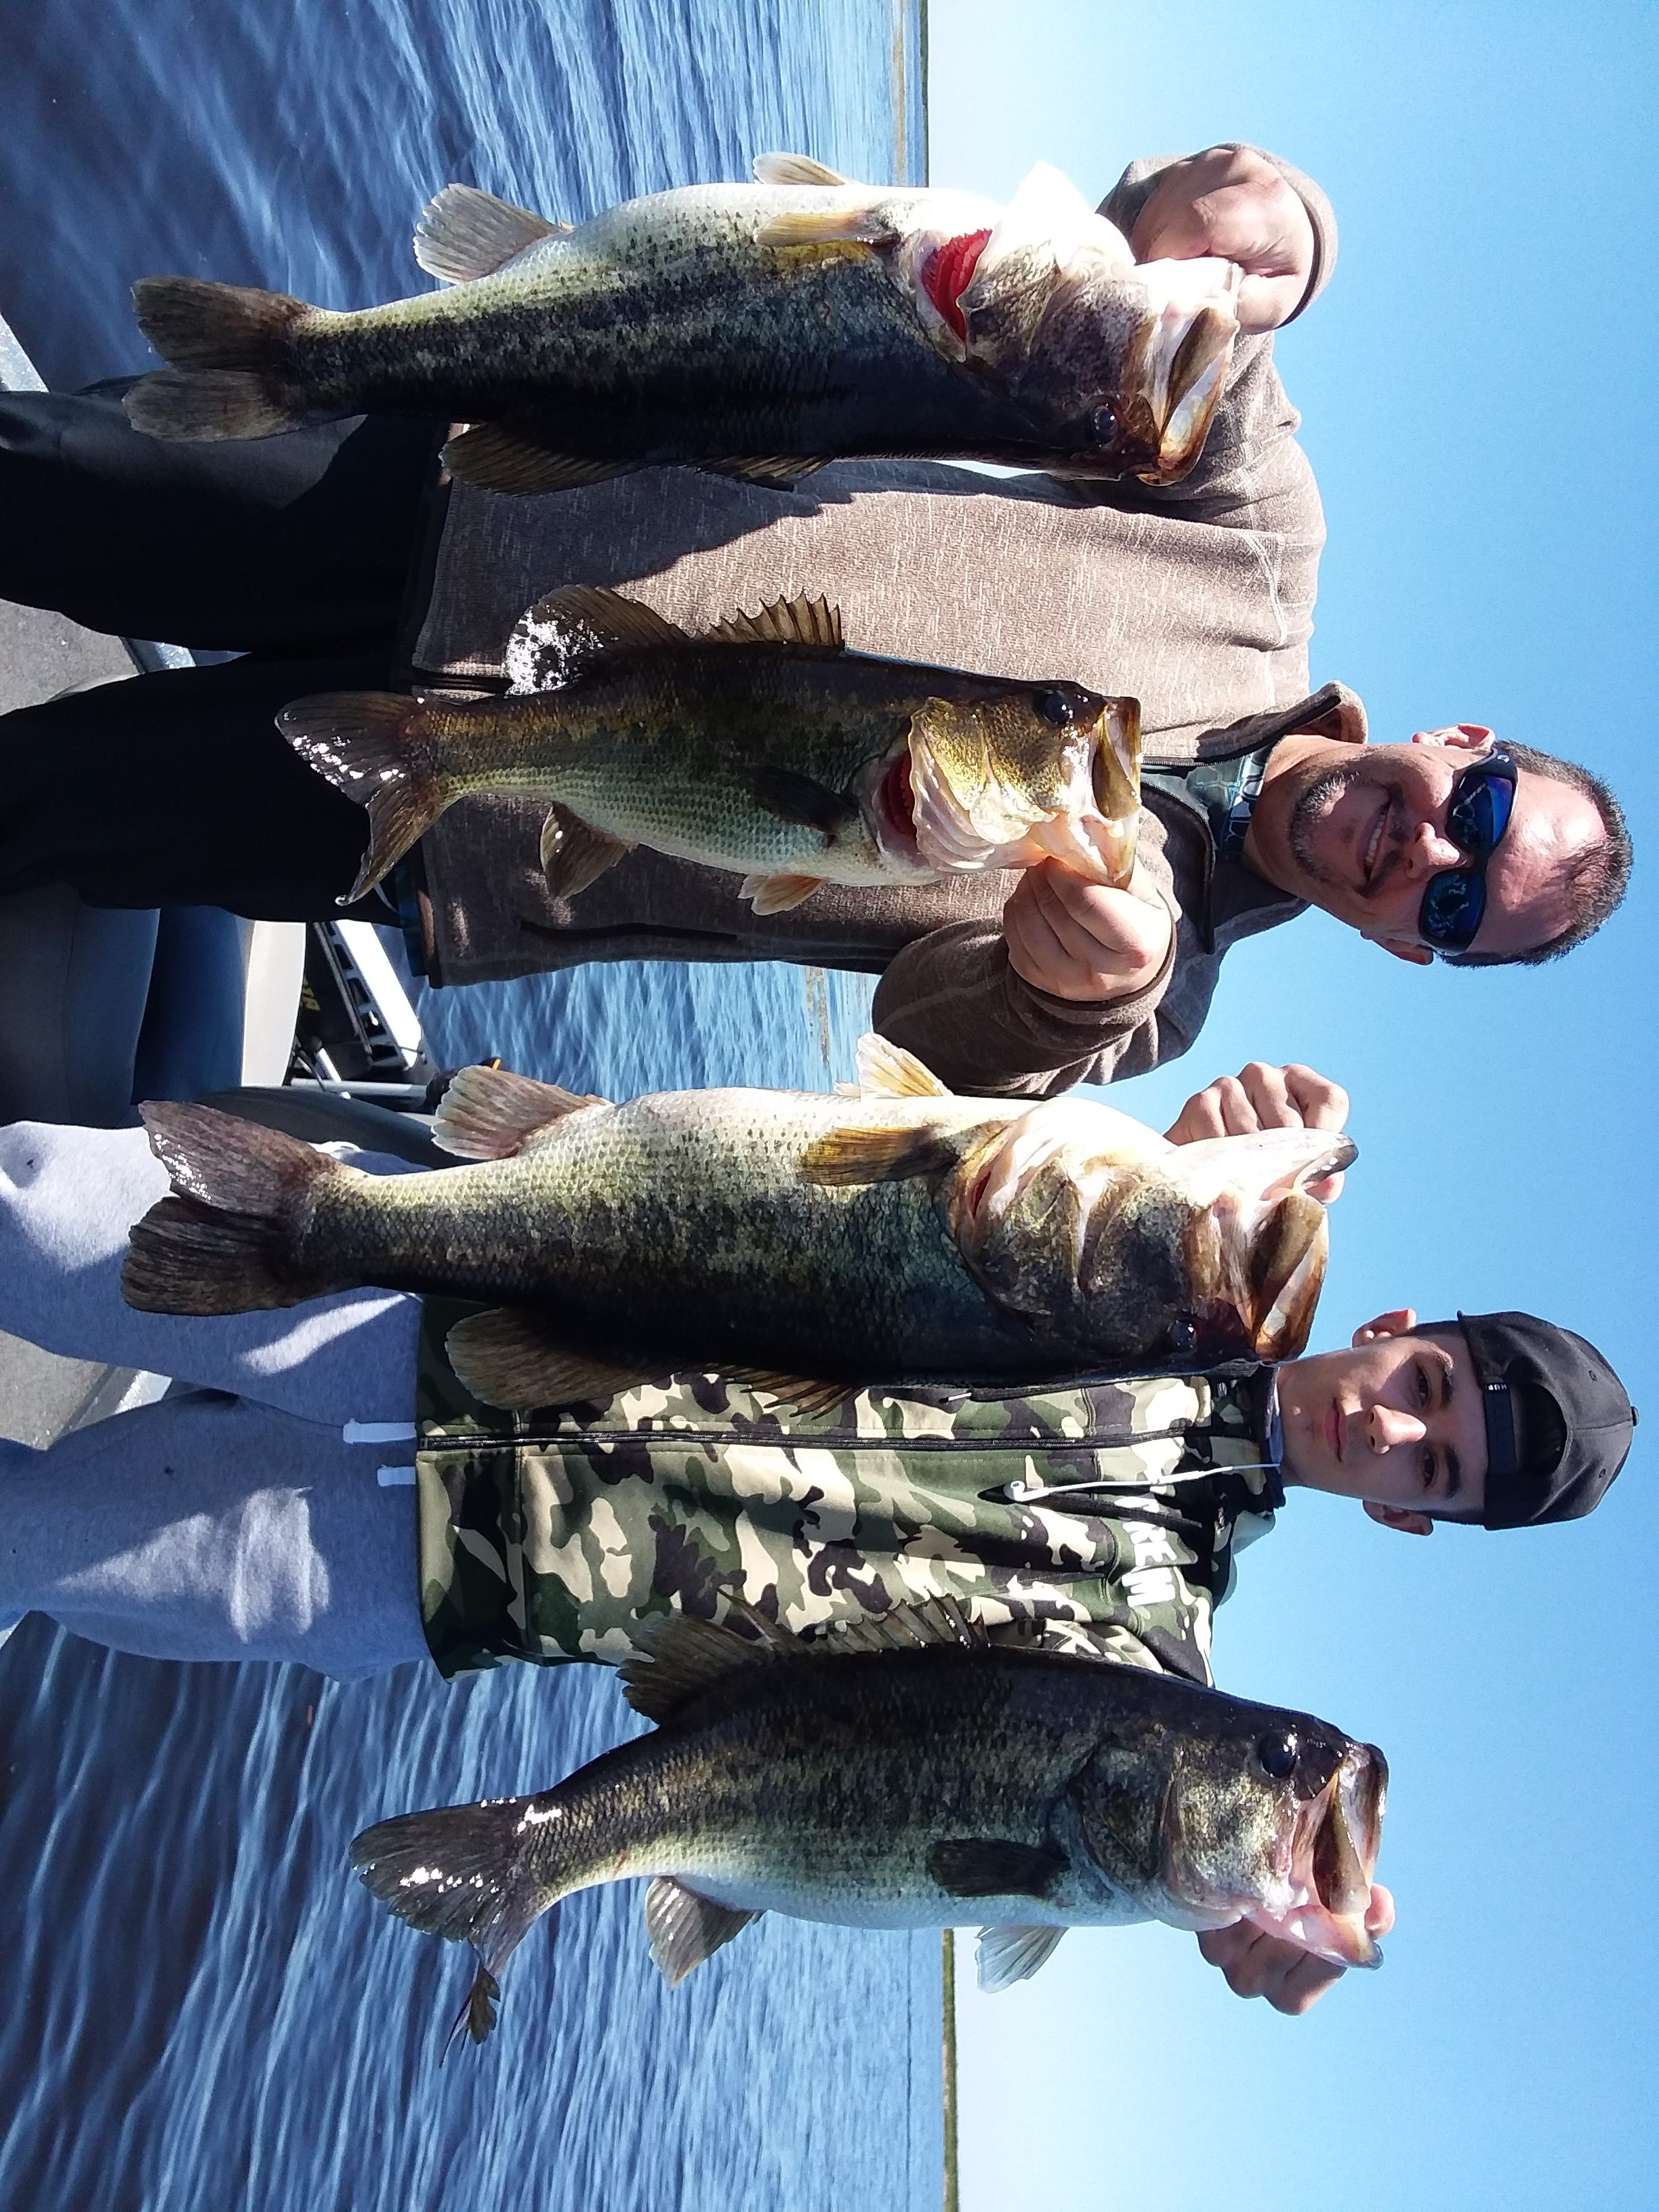 Okeechobee Fishing Guides- Okeechobee Fishing Report 4/18/18